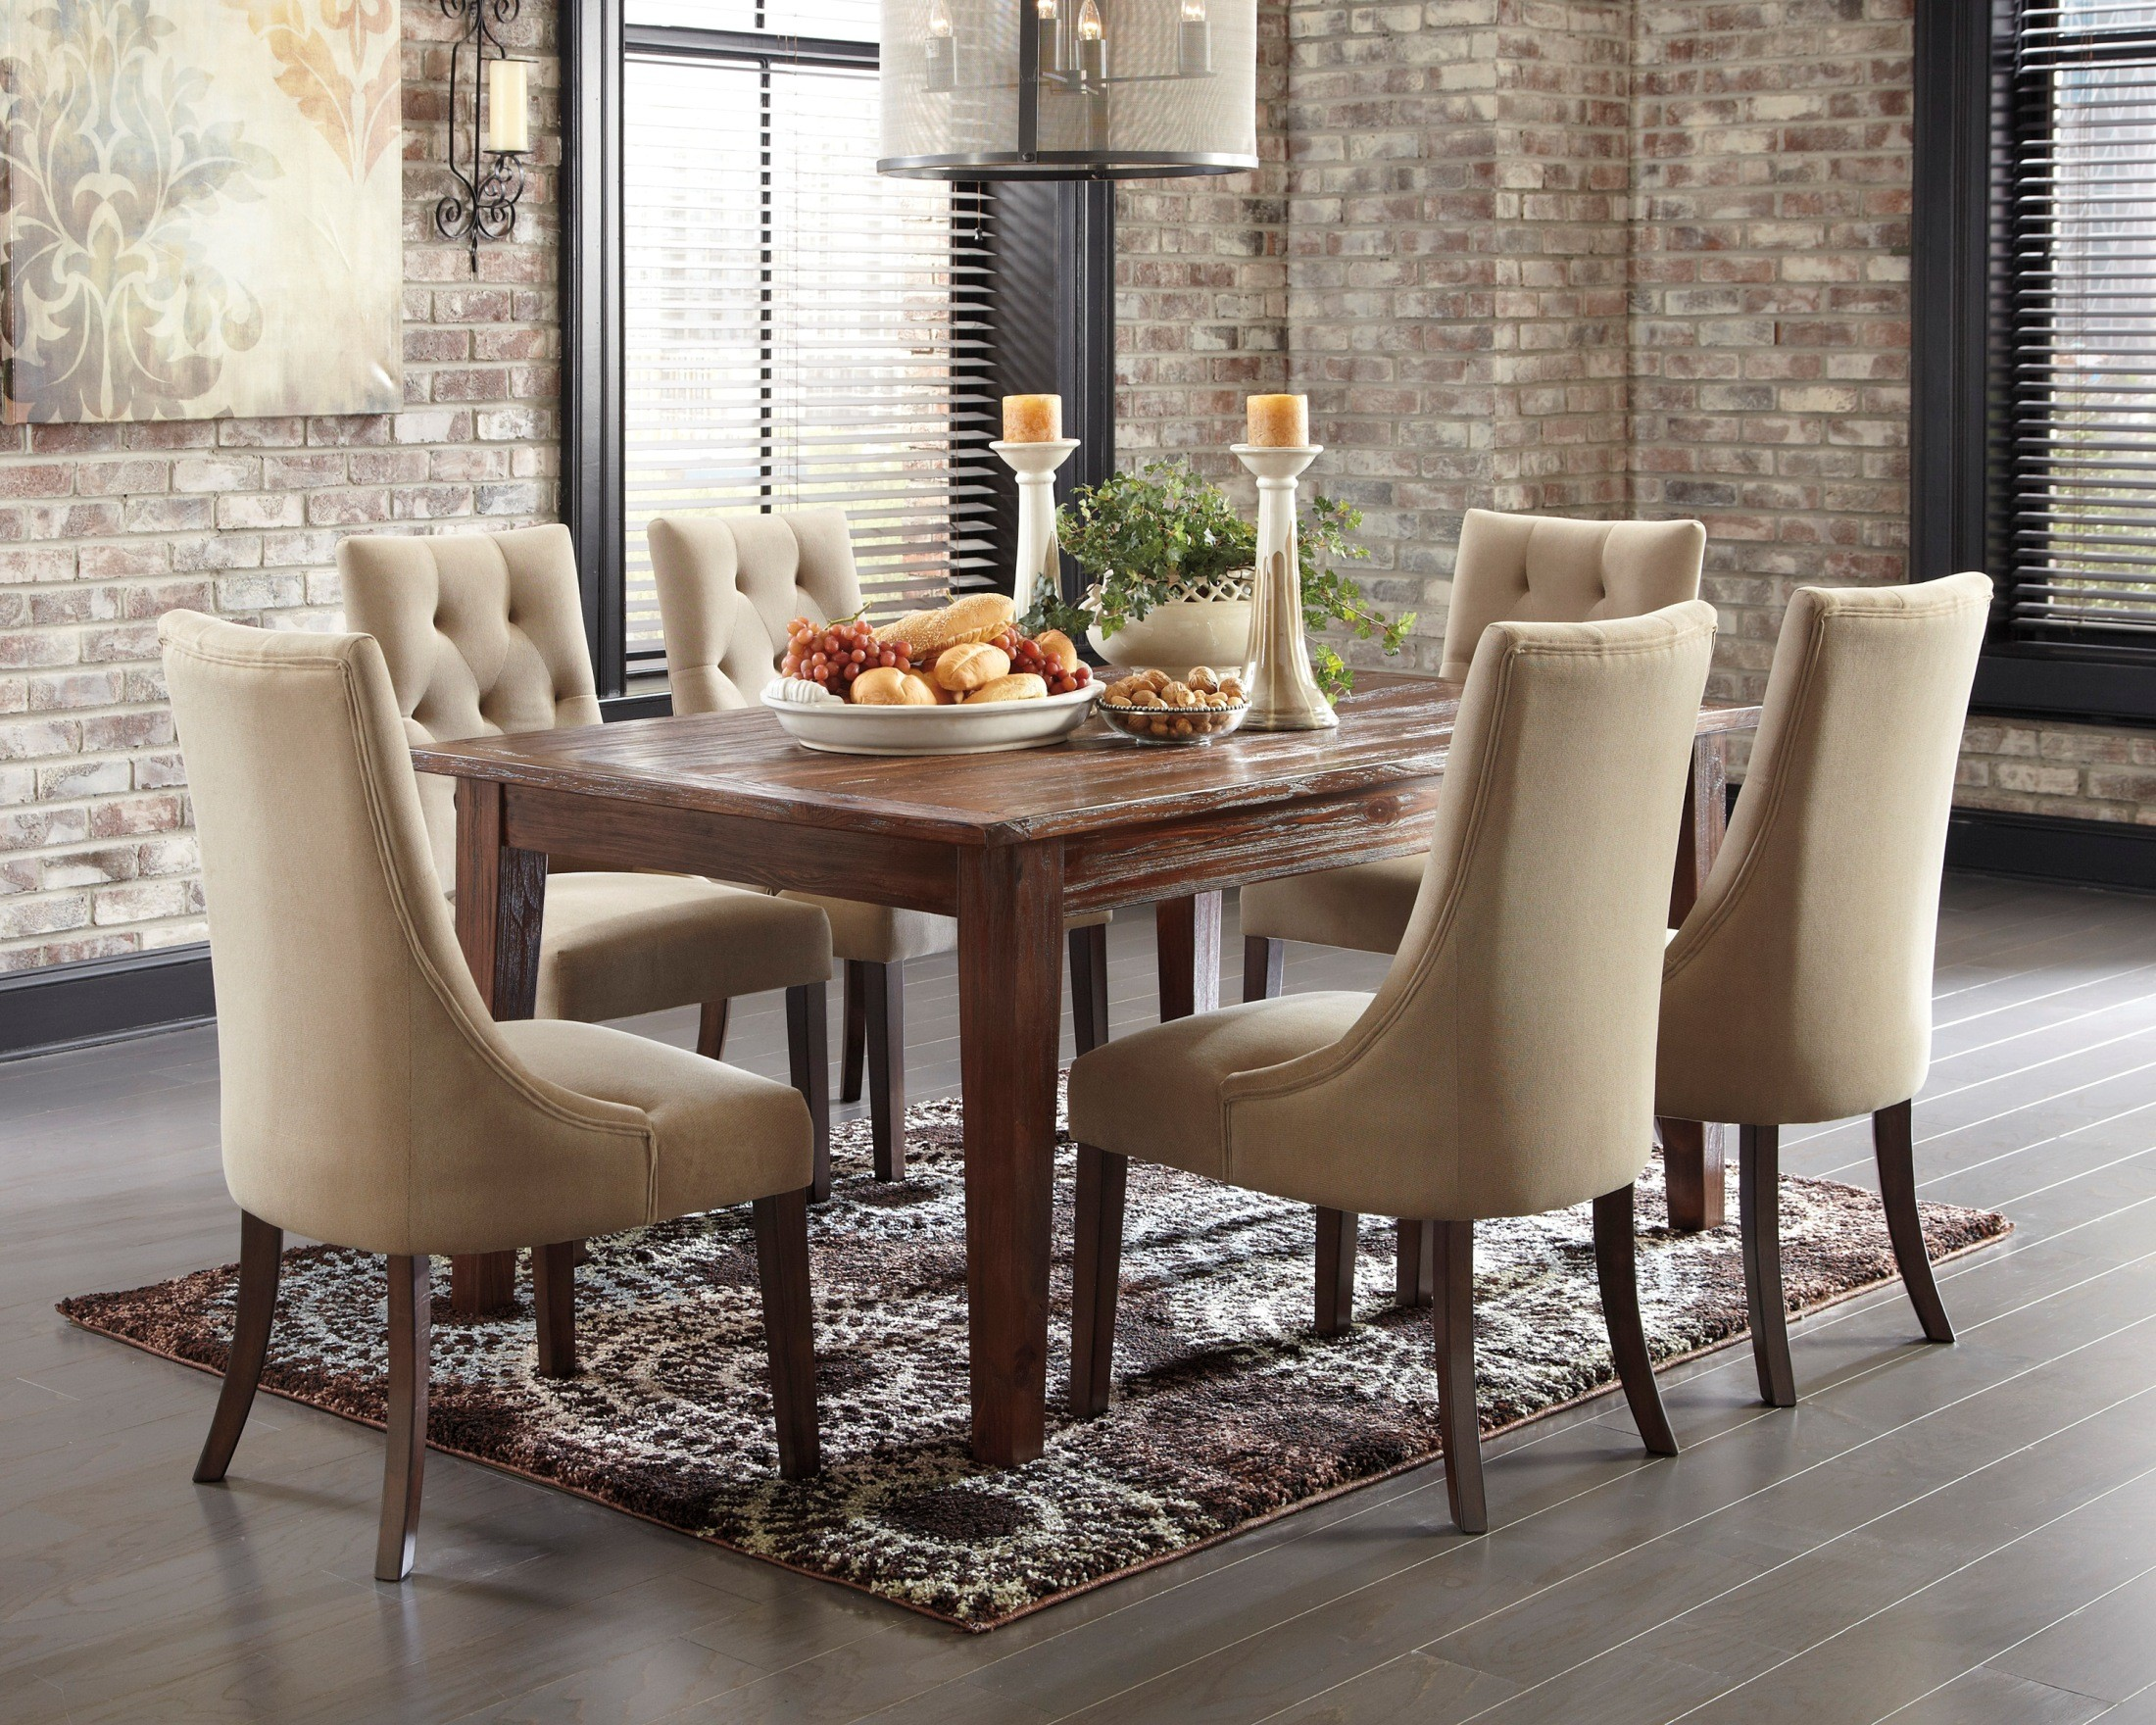 Room dining room groups mestler bisque rectangular dining room table - Mestler Dark Brown Dining Room Set From Ashley D540125 Coleman Furniture